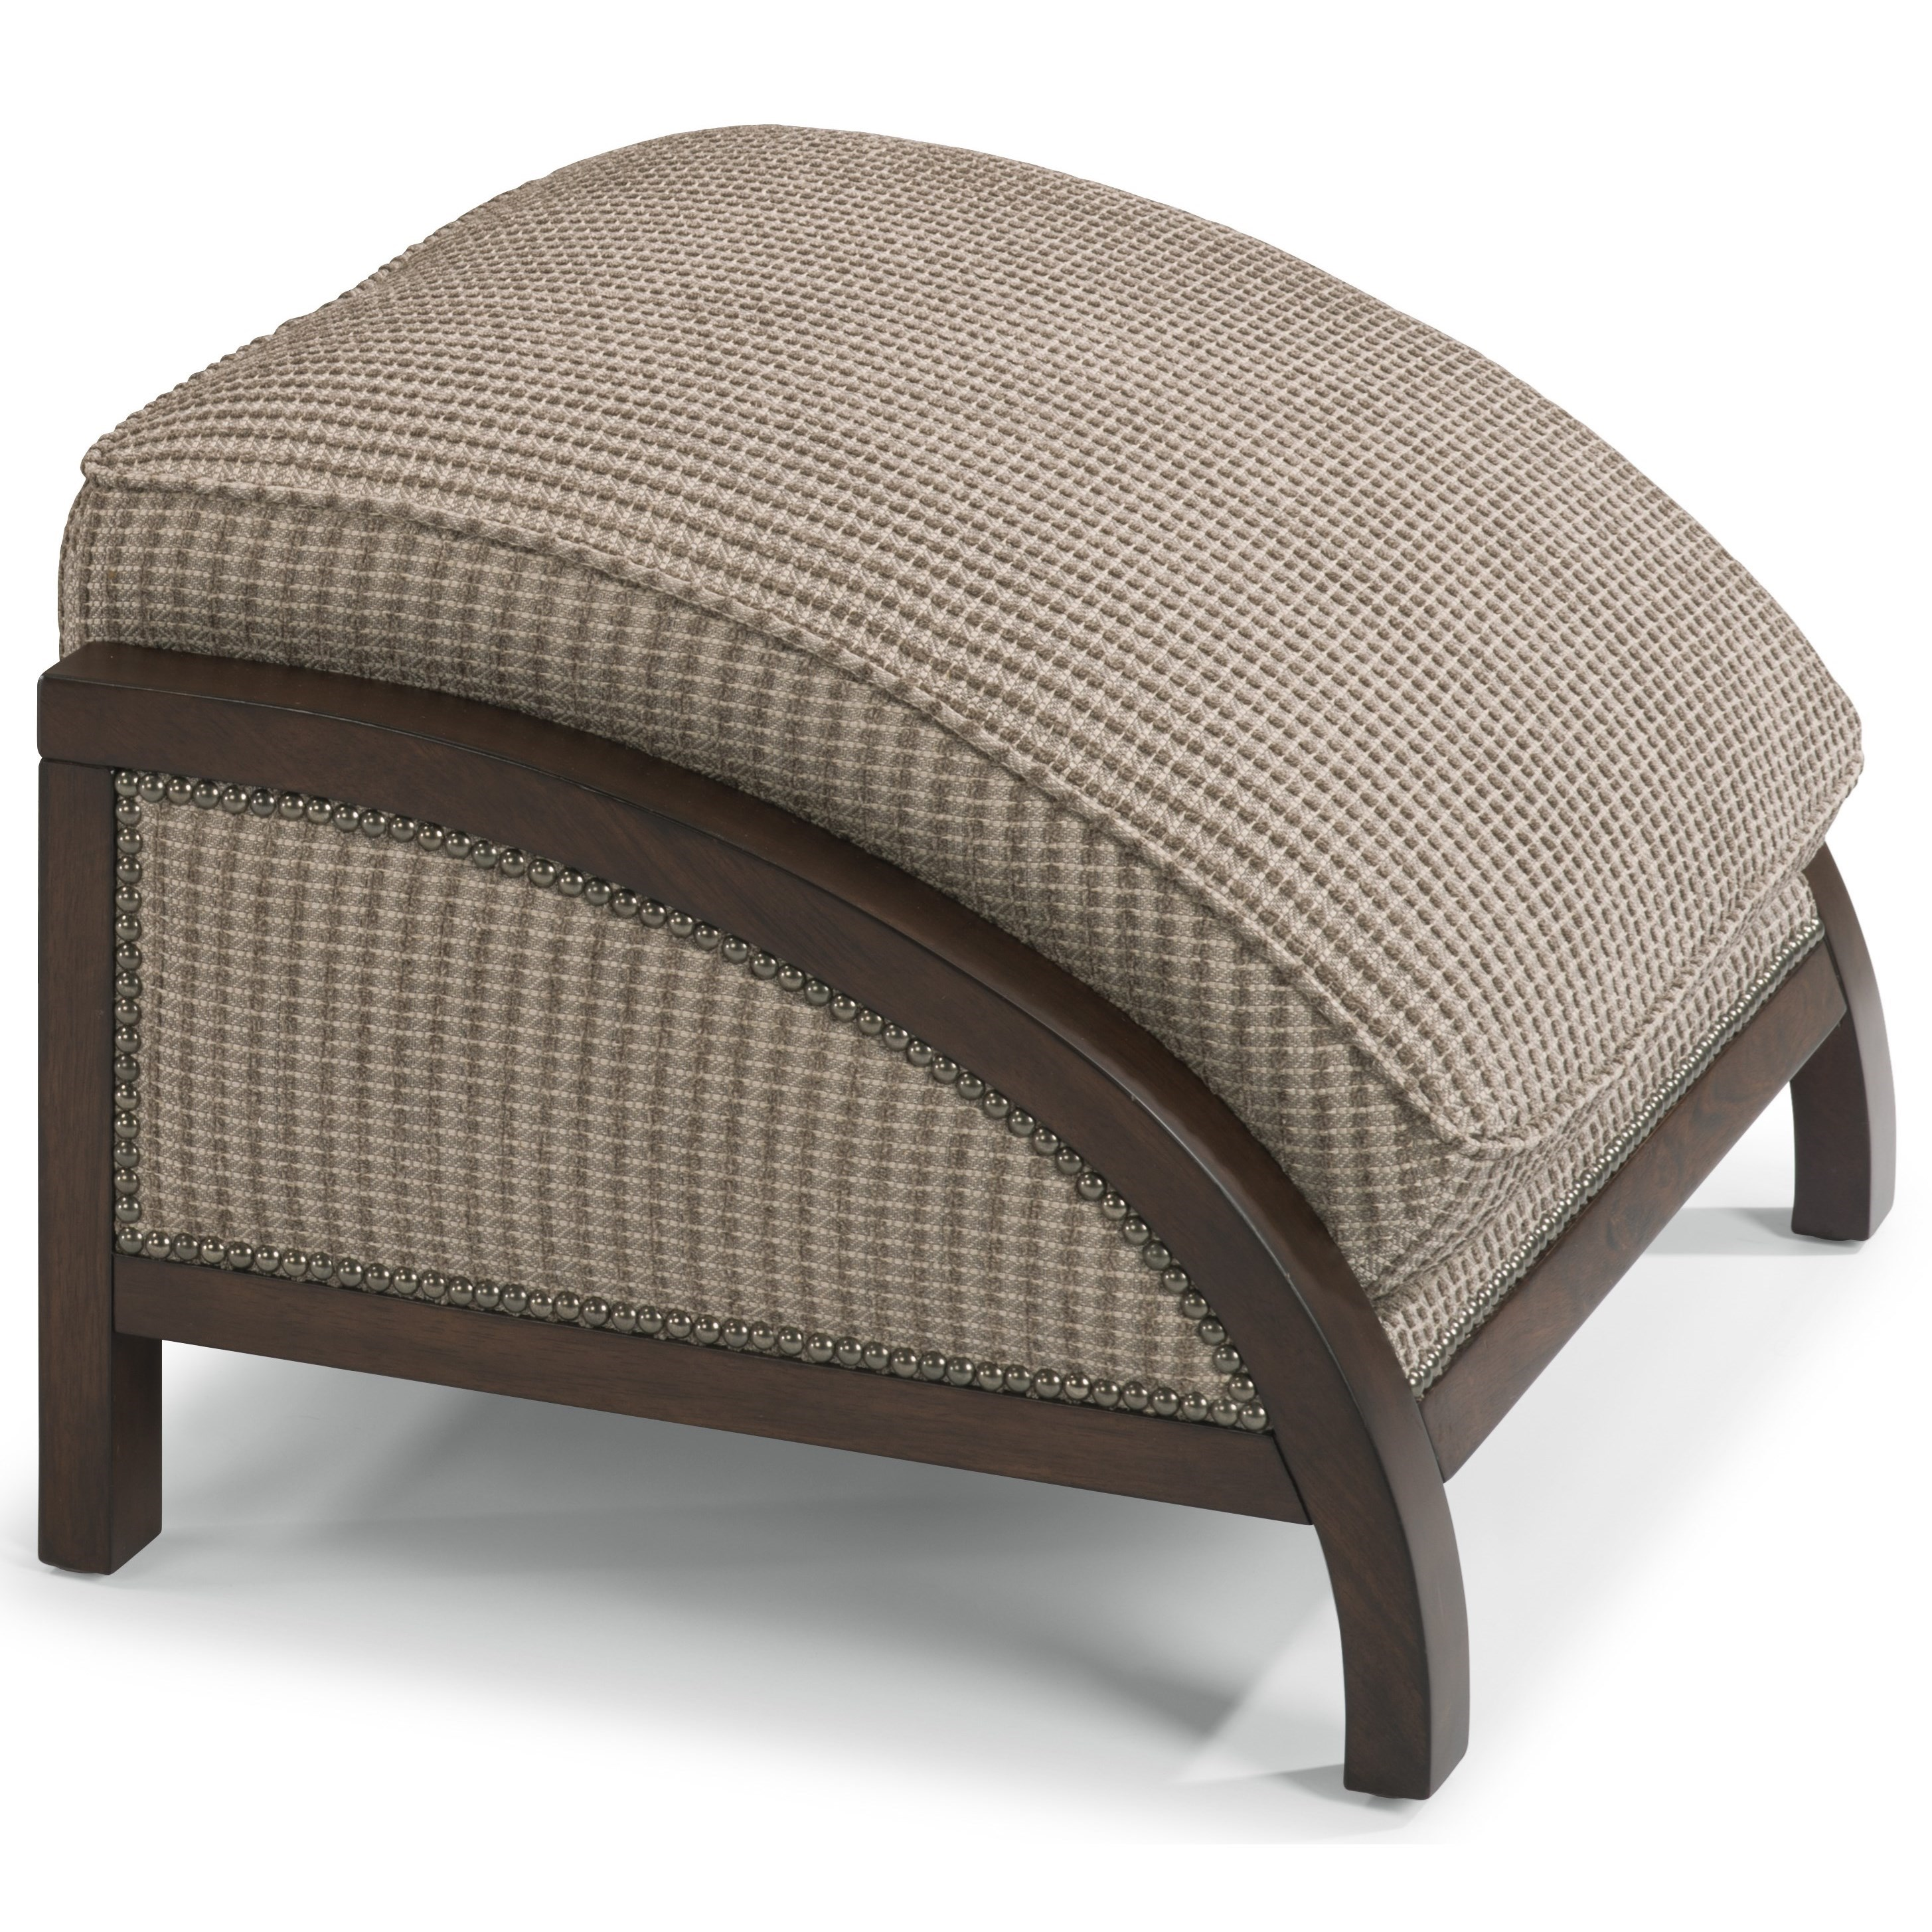 Flexsteel Accents Comac Ottoman  - Item Number: 0117-08